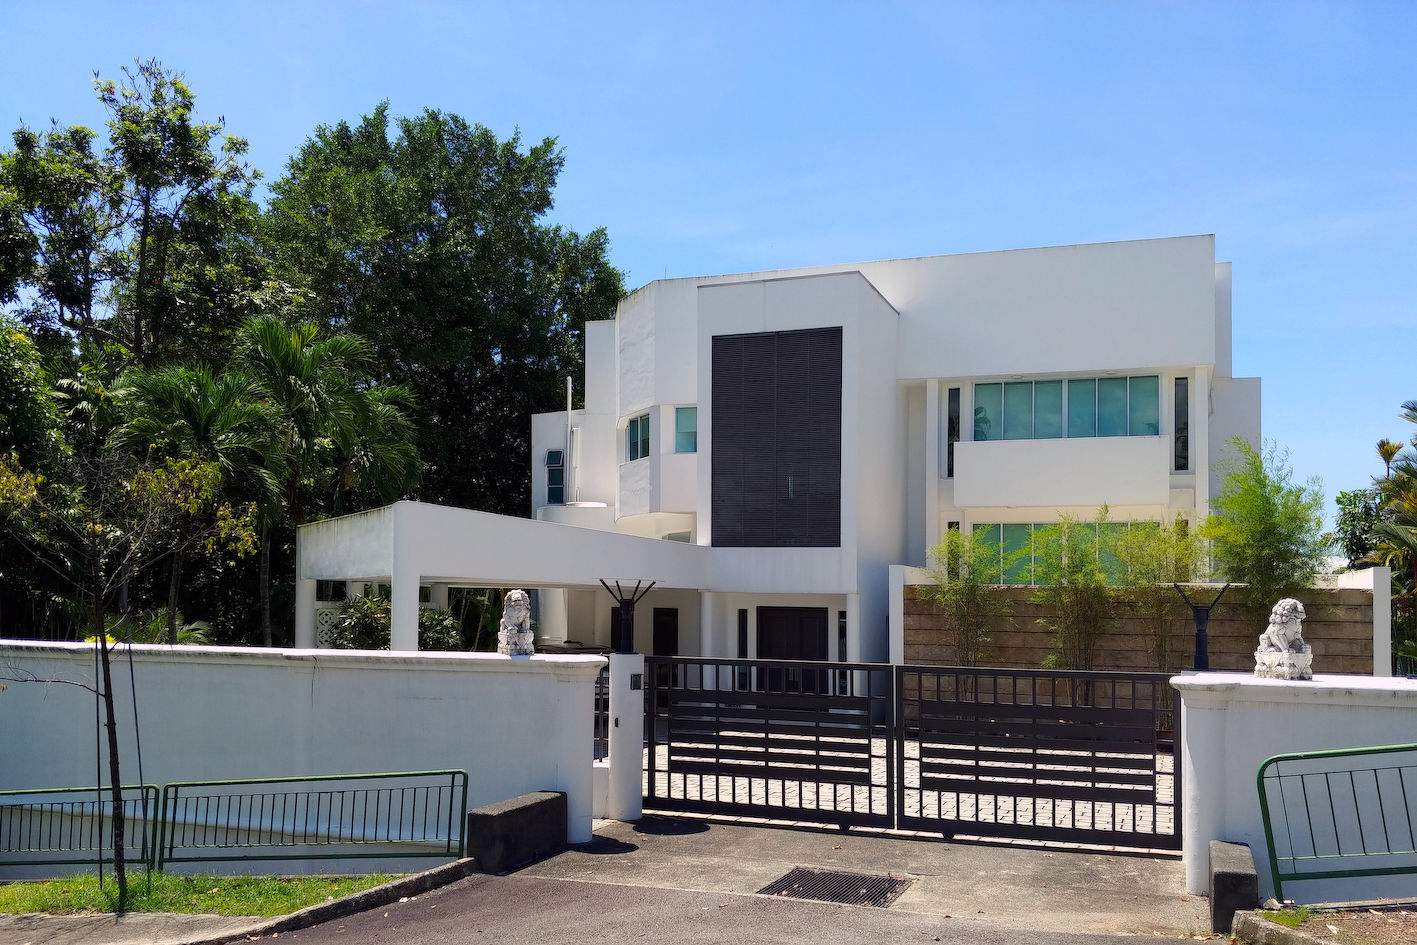 The Good Class Bungalow at Second Avenue belonging to OK Lim and his wife had a caveat lodged for $27 million (Photo: Samuel Isaac Chua/EdgeProp Singapore)